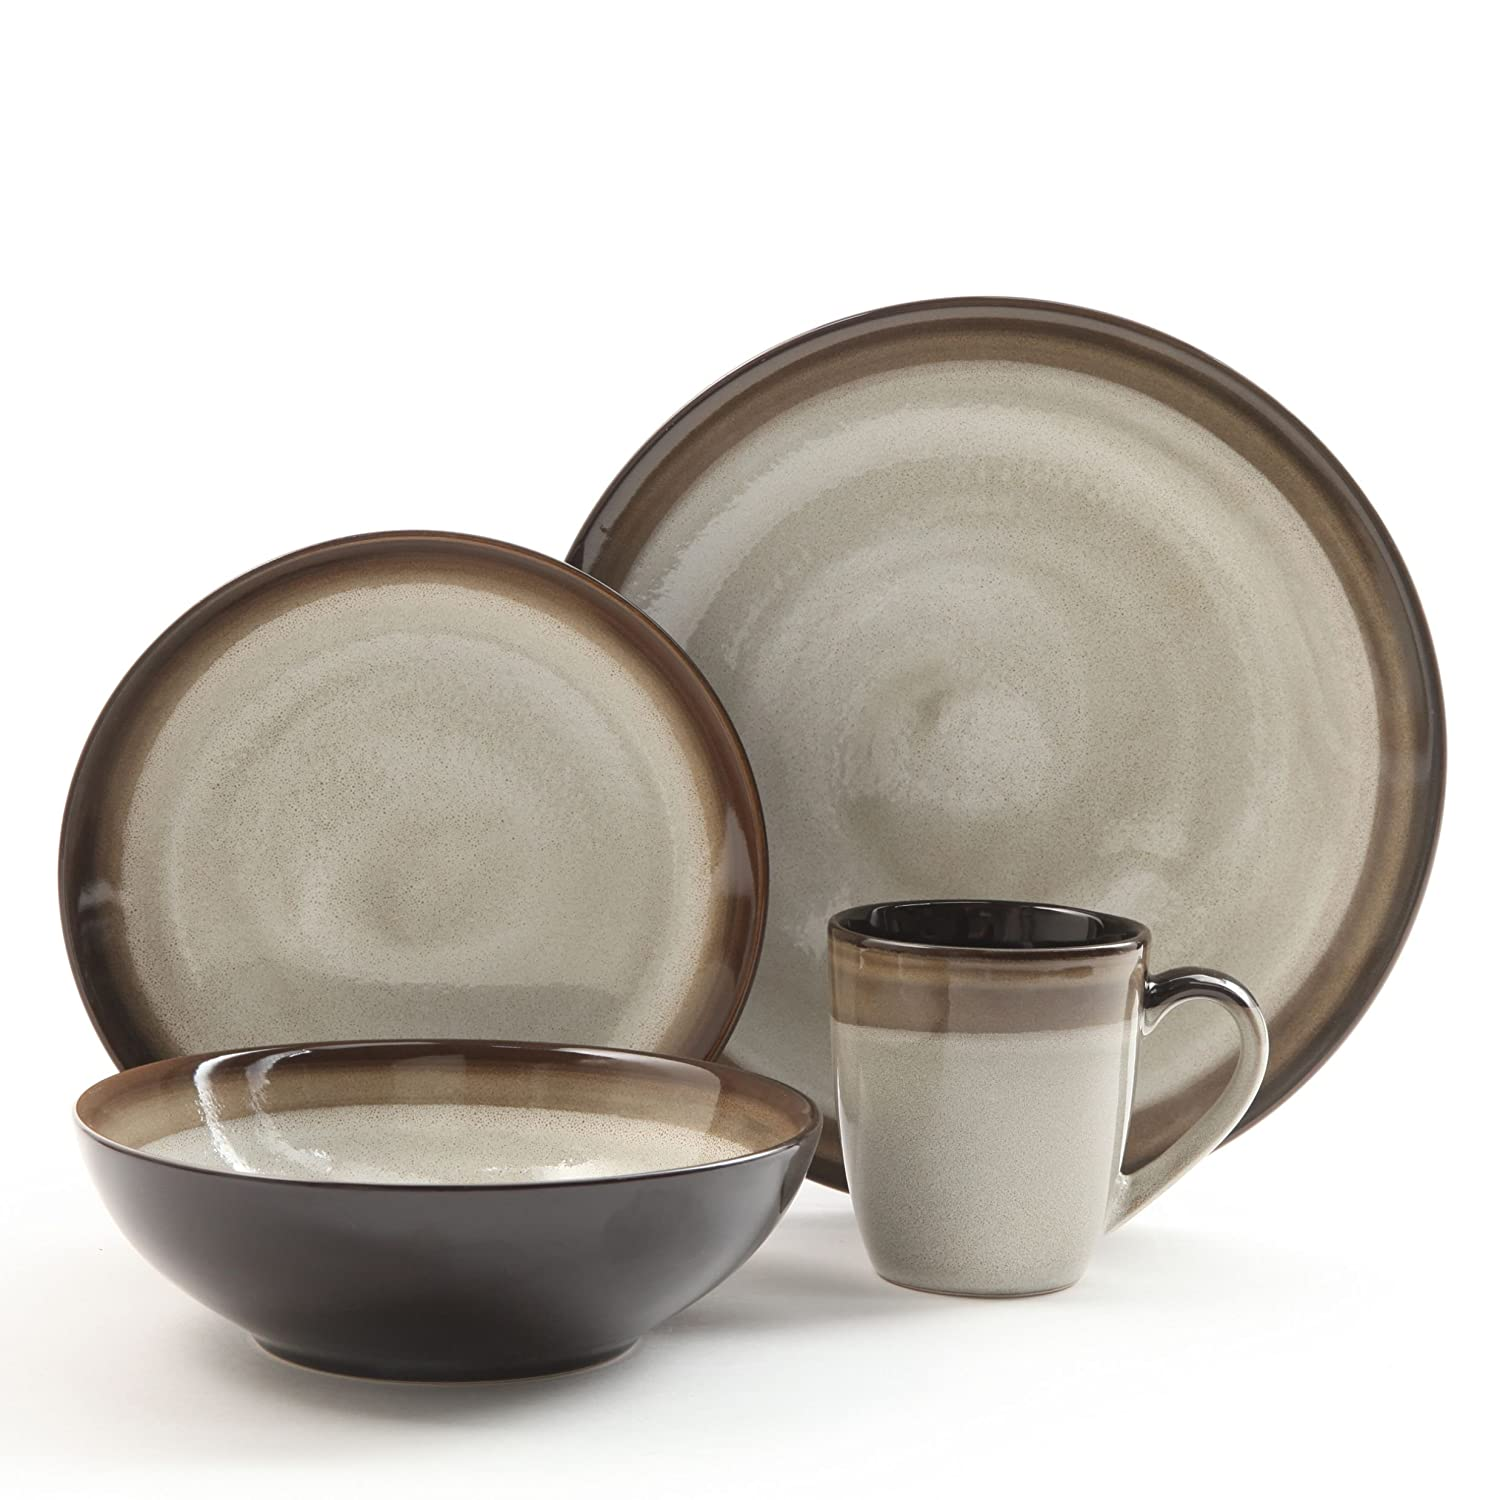 Gibson Elite 91547.16RM Couture Bands 16-Piece Dinnerware Set, Blue and Cream Gibson Overseas Inc.